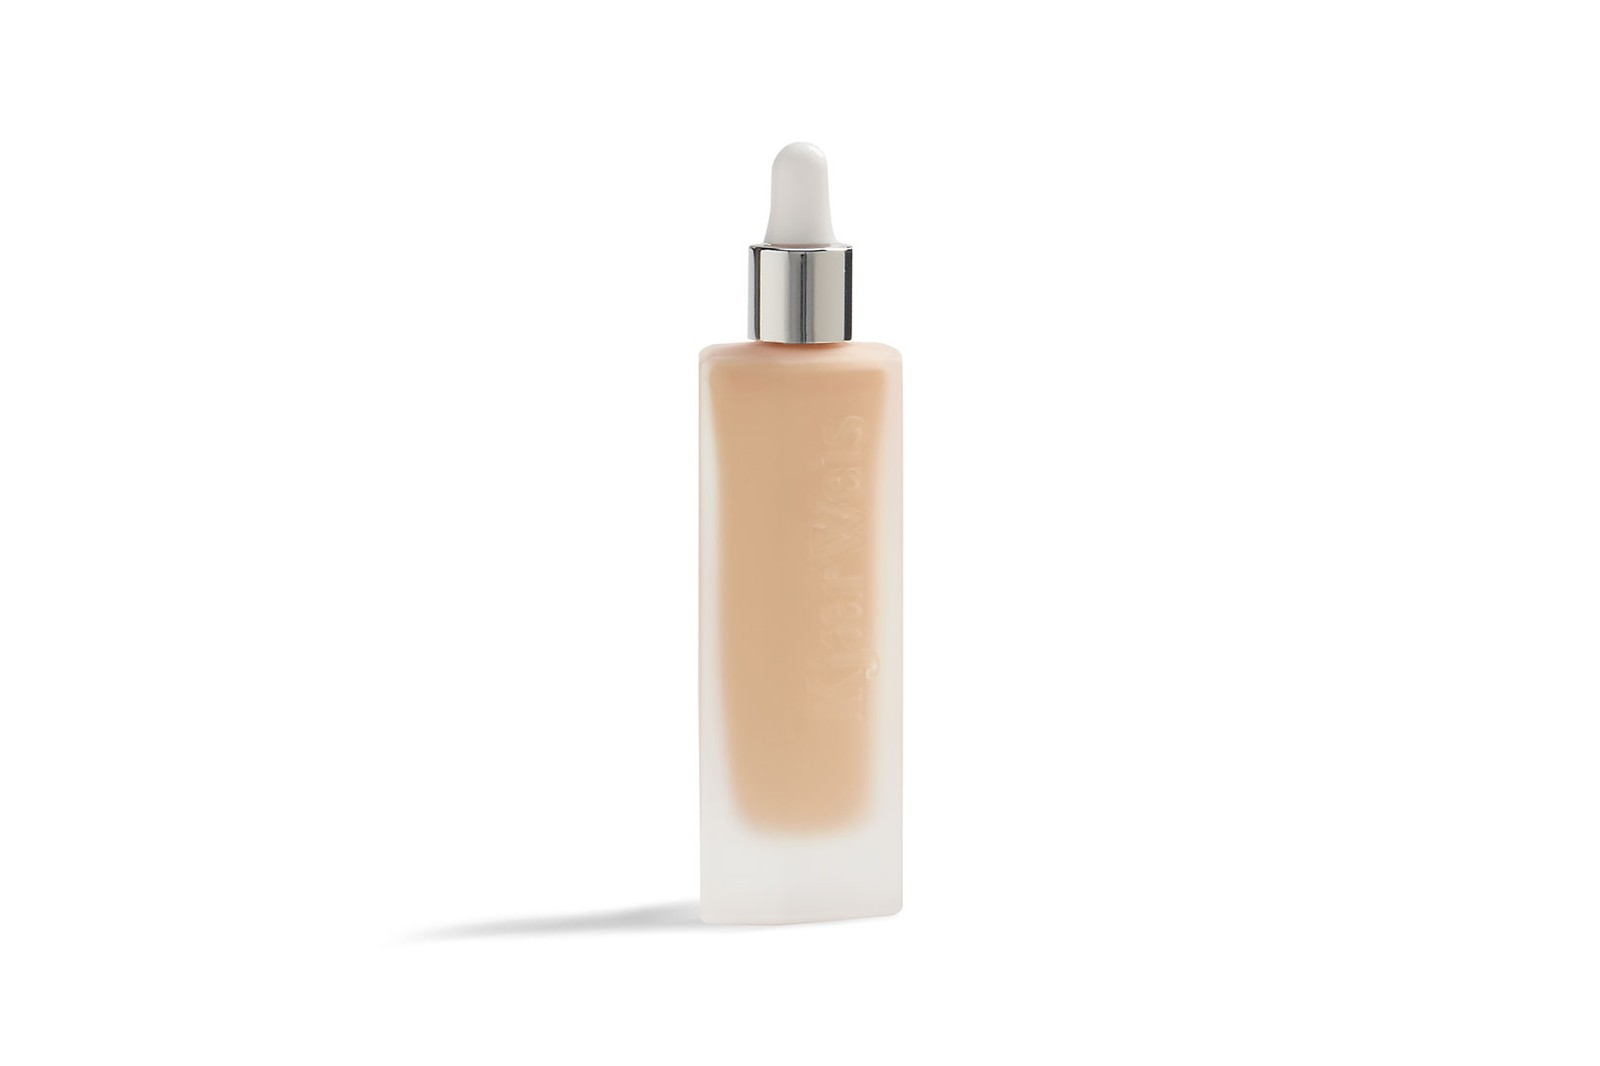 kjaer weis invisible touch liquid foundation makeup beauty